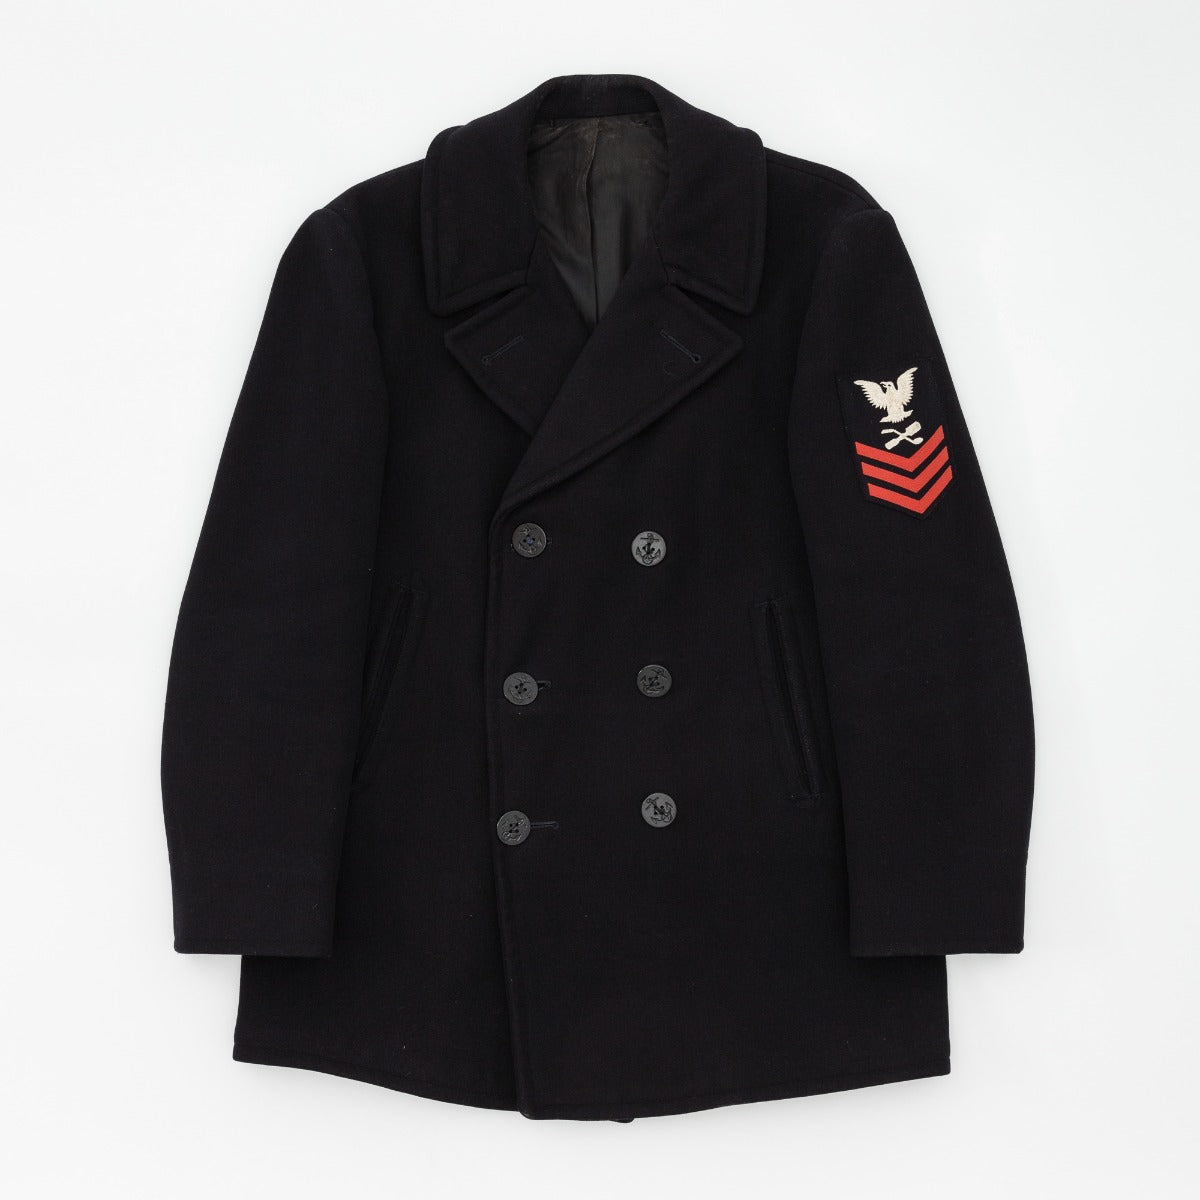 Vintage 1950s US Navy Pea Coat